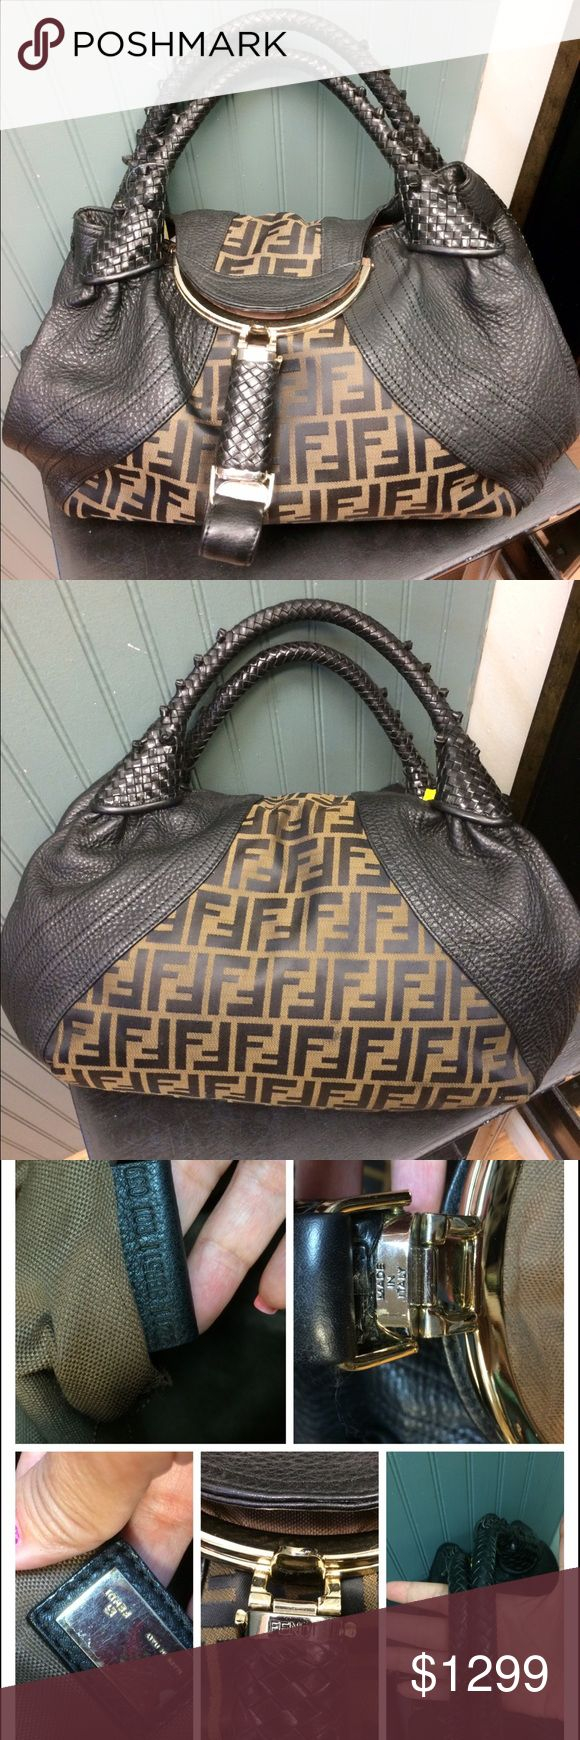 Authentic Fendi Spy bag monogram w/ leather large Great condition.  Outside has no blemish at all.  The inside has a few pen marks which can be cleaned.  No smell.  No dust bag or box FINAL SALEtrade value higher FENDI Bags Hobos